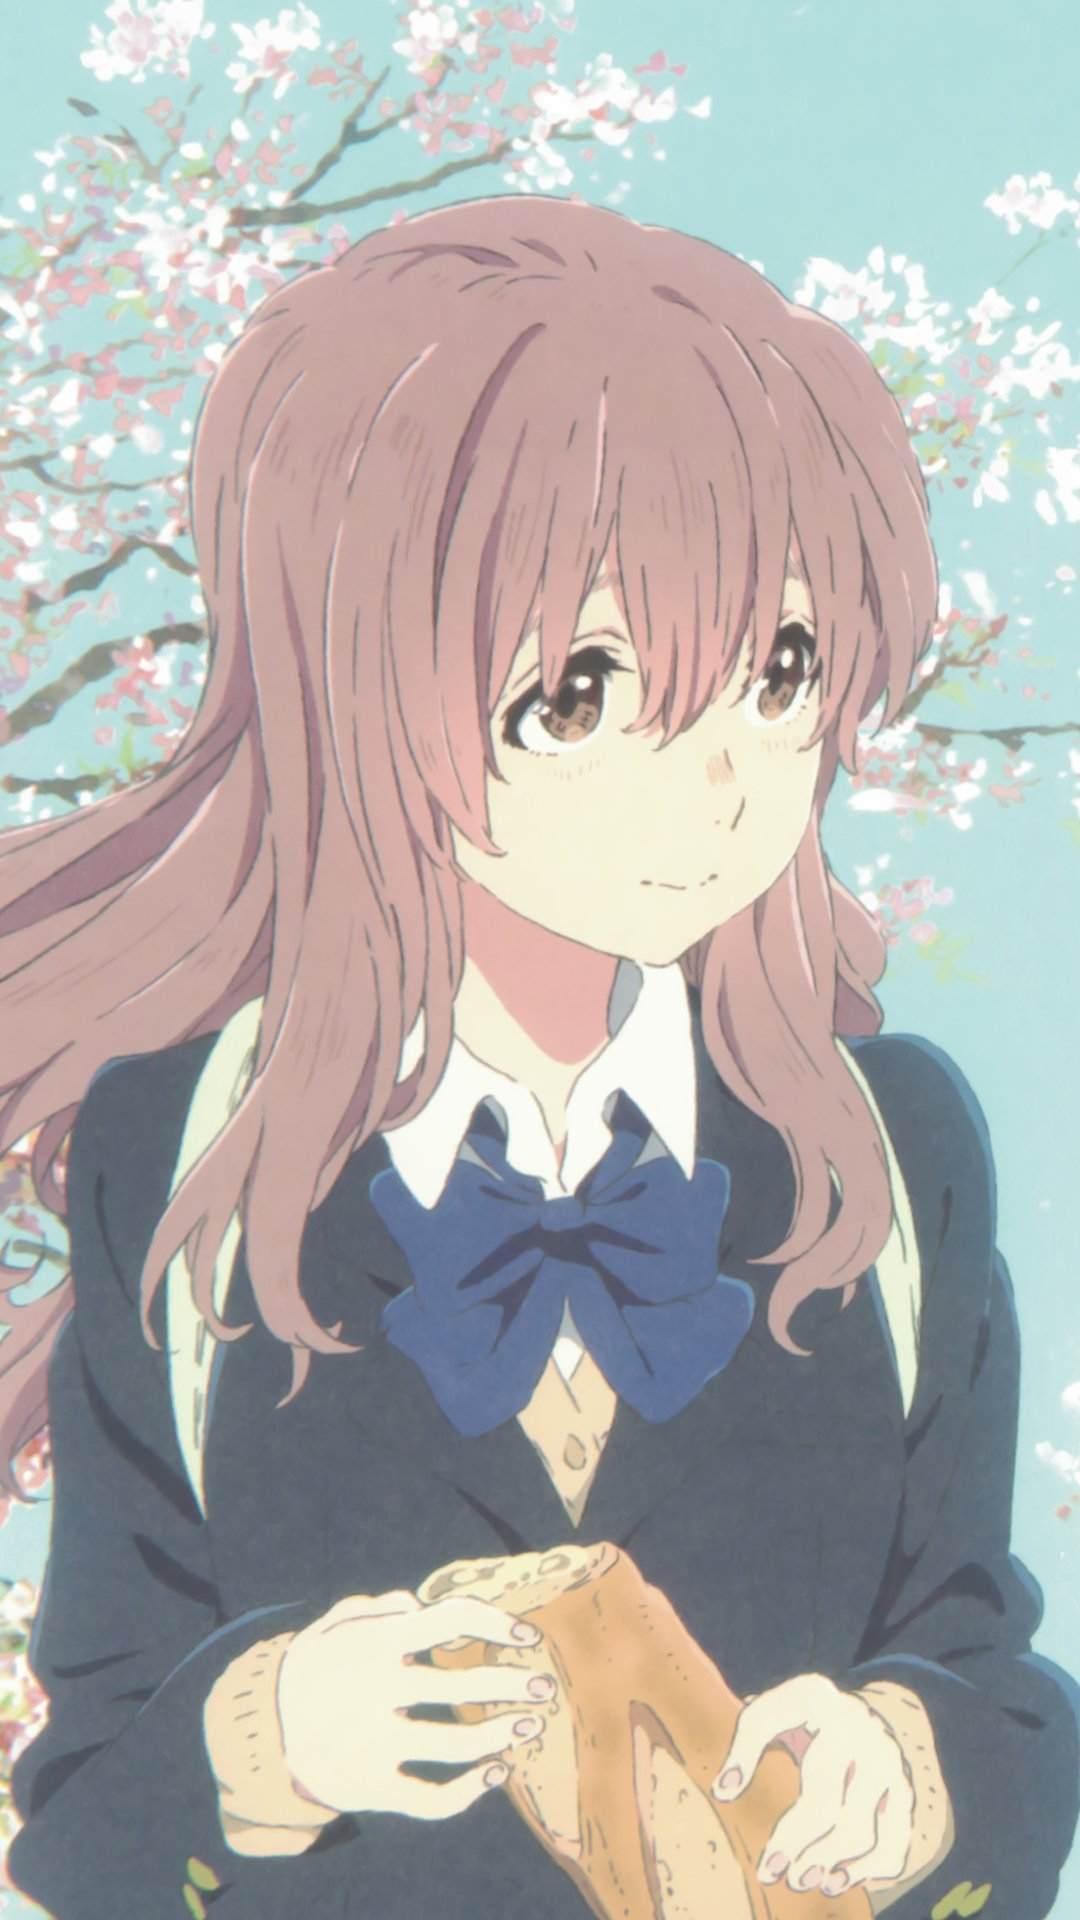 Cute Ipod Touch Wallpaper Koe No Katachi Shouko Nishimiya Iphone 6 Plus Wallpaper